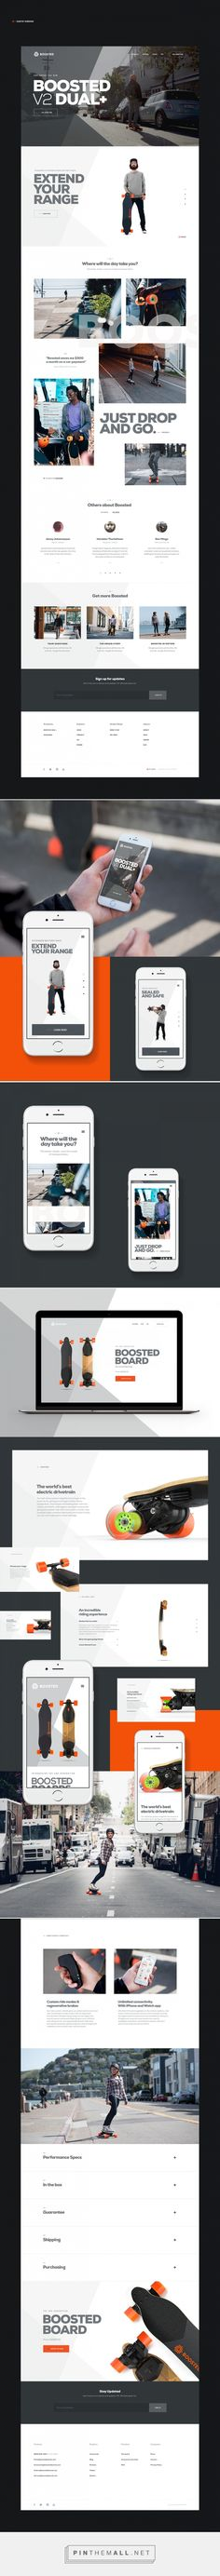 Boosted Board Web Site